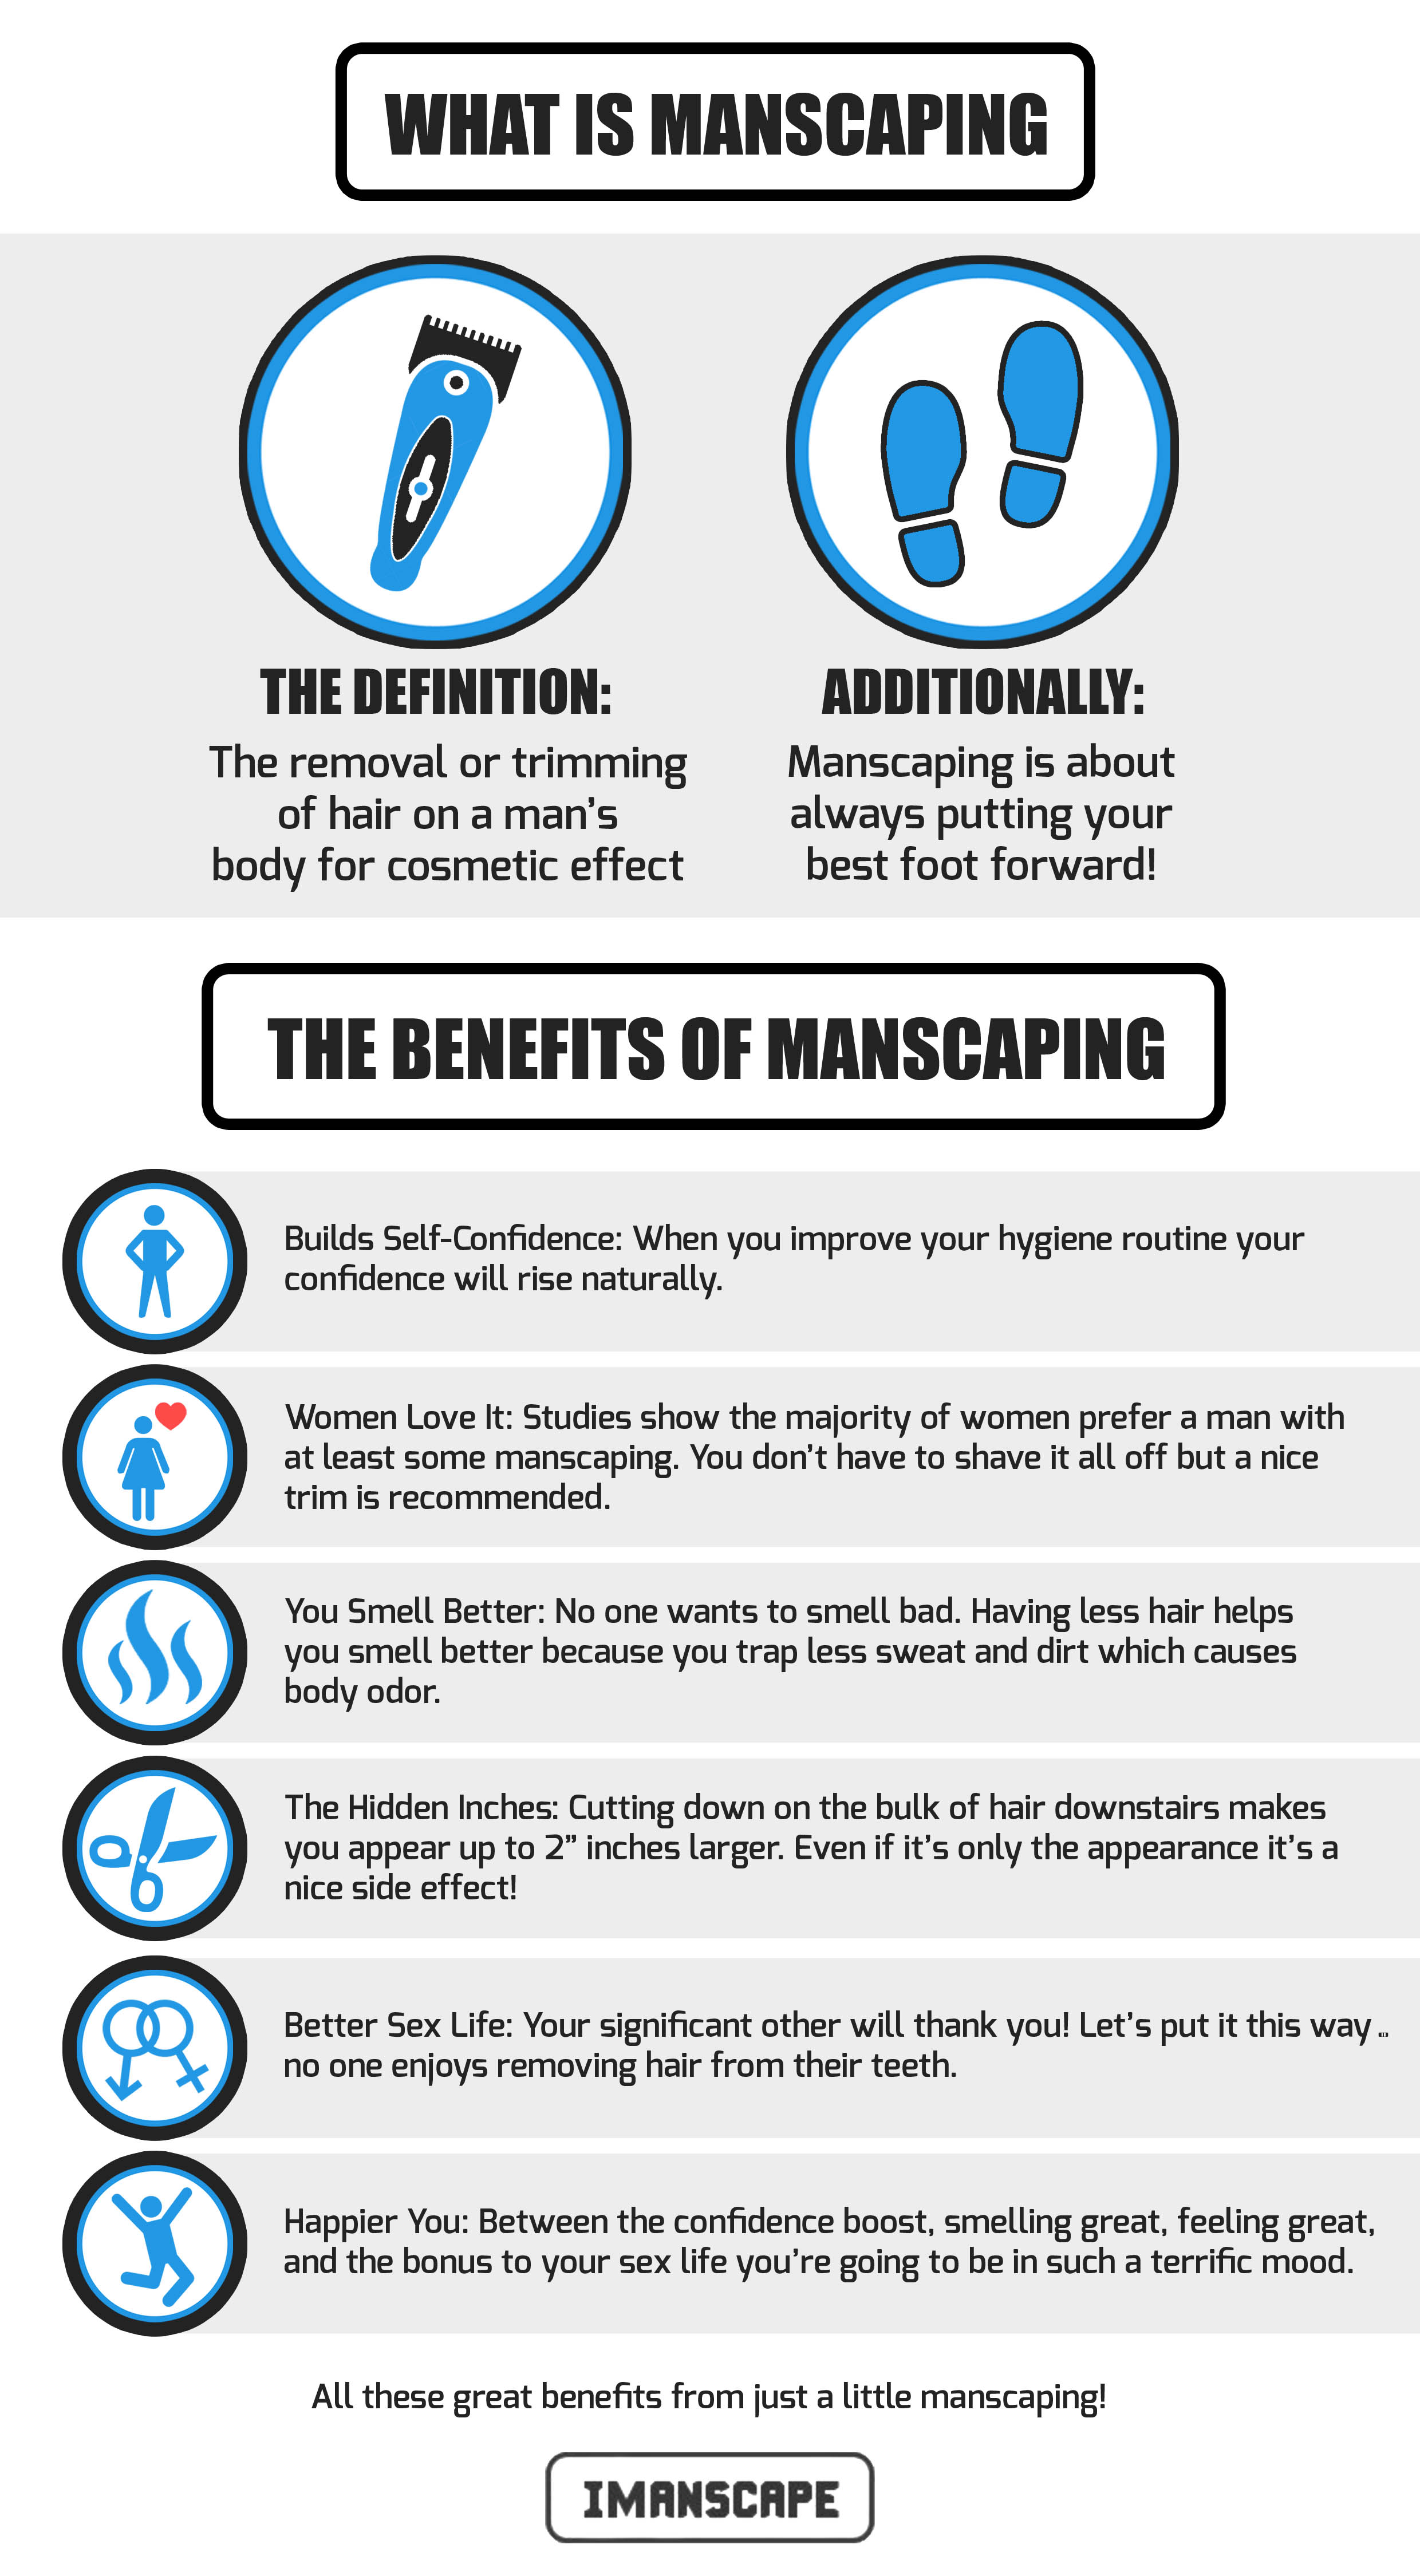 manscaping-infographic